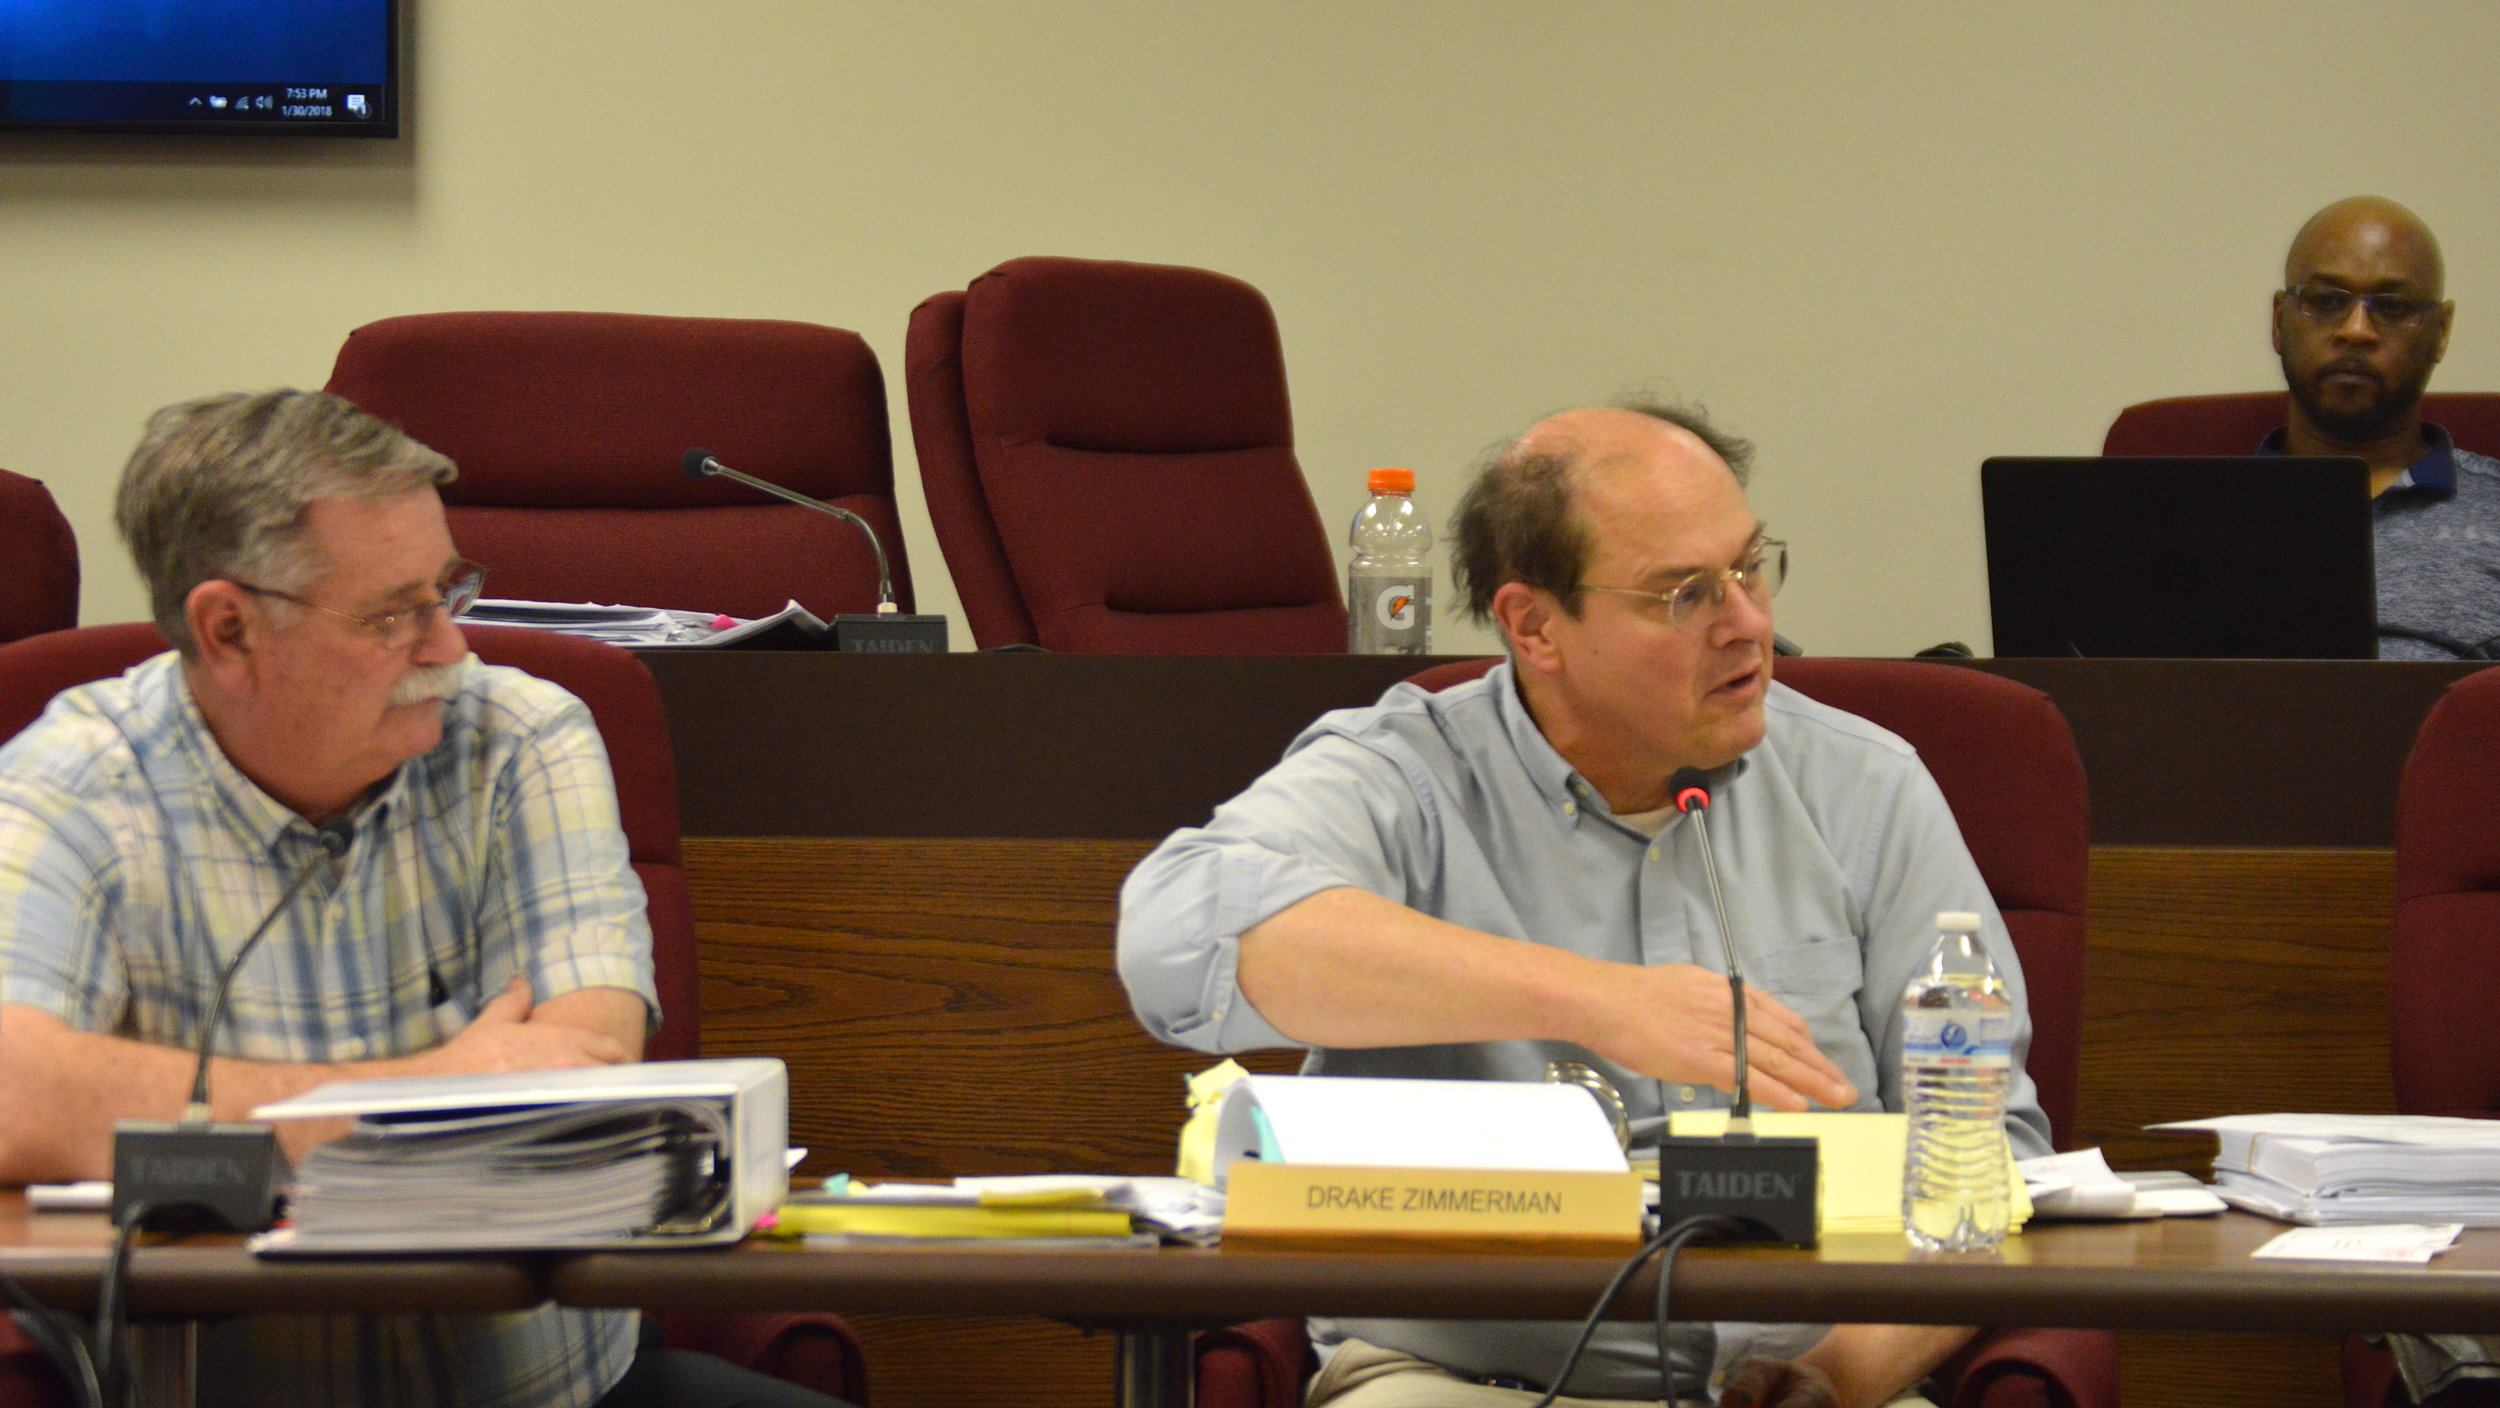 Members of The McLean County Zoning Board of appeals deliberated for nearly three hours before a unanimous vote to recommend approval of Invenergy's proposed wind farm.(Image Credit: Breanna Grow)